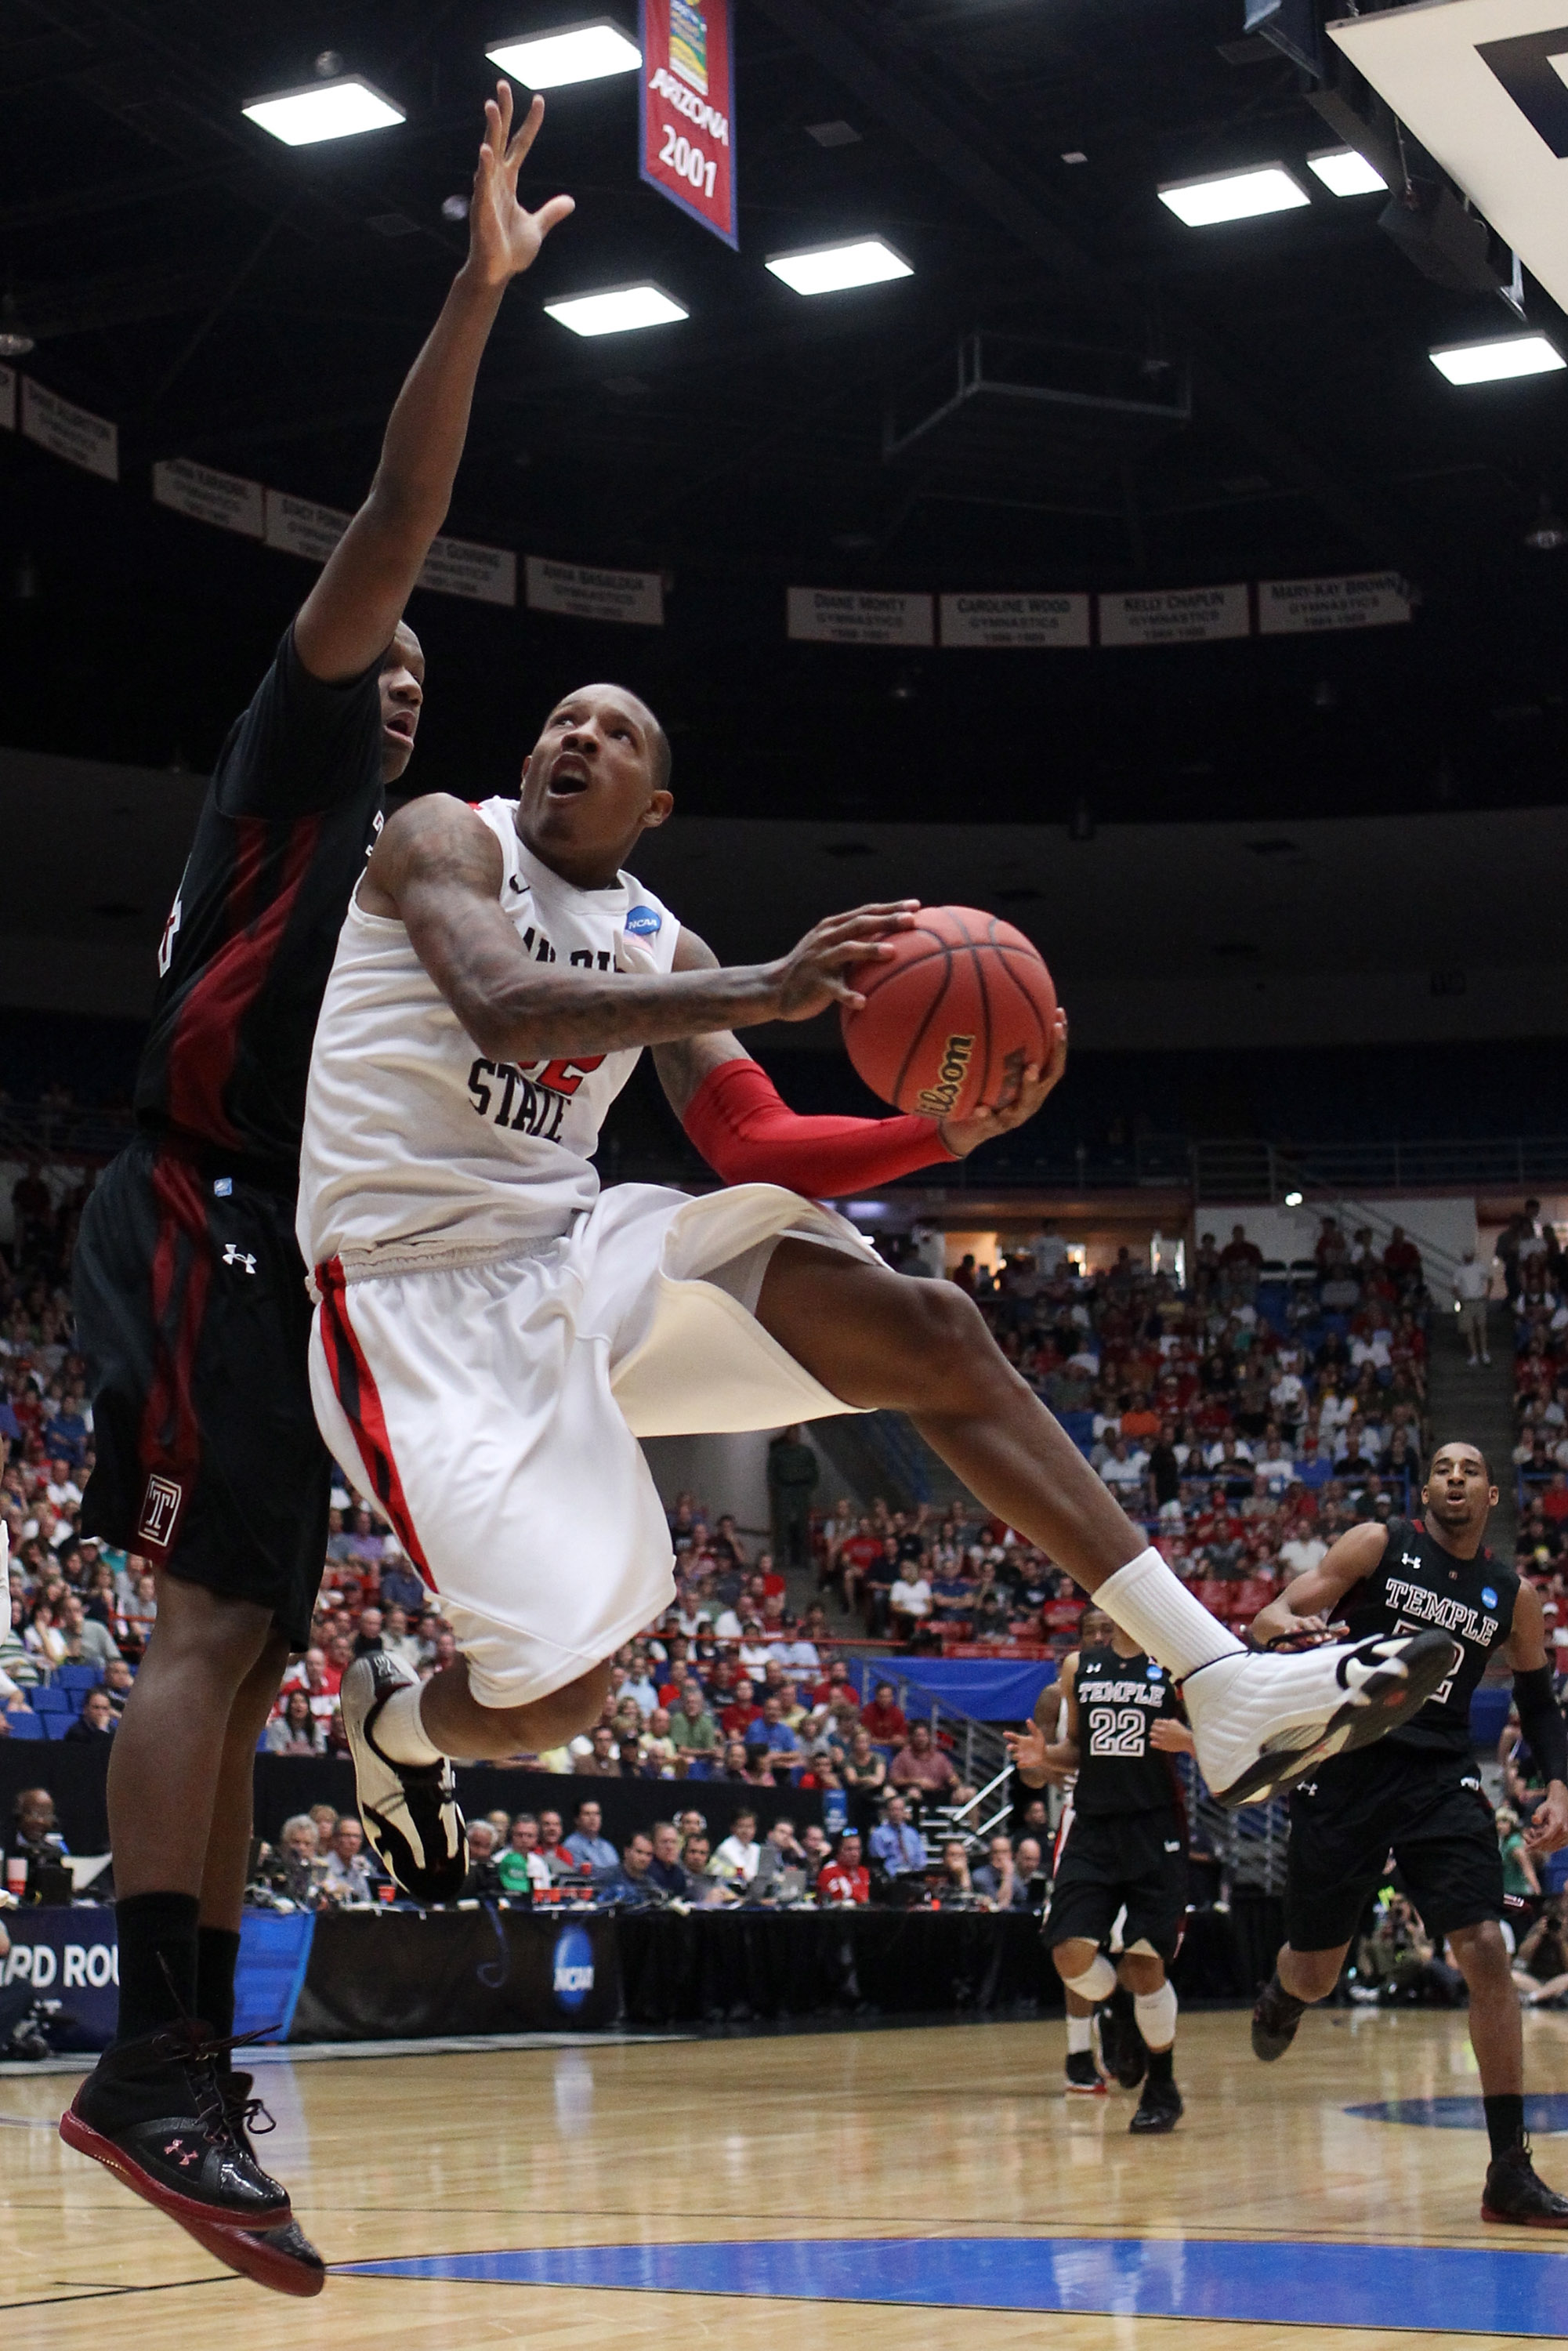 TUCSON, AZ - MARCH 19:  Billy White #32 of the San Diego State Aztecs shoots against the Temple Owls during the third round of the 2011 NCAA men's basketball tournament at McKale Center on March 19, 2011 in Tucson, Arizona.  (Photo by Christian Petersen/G